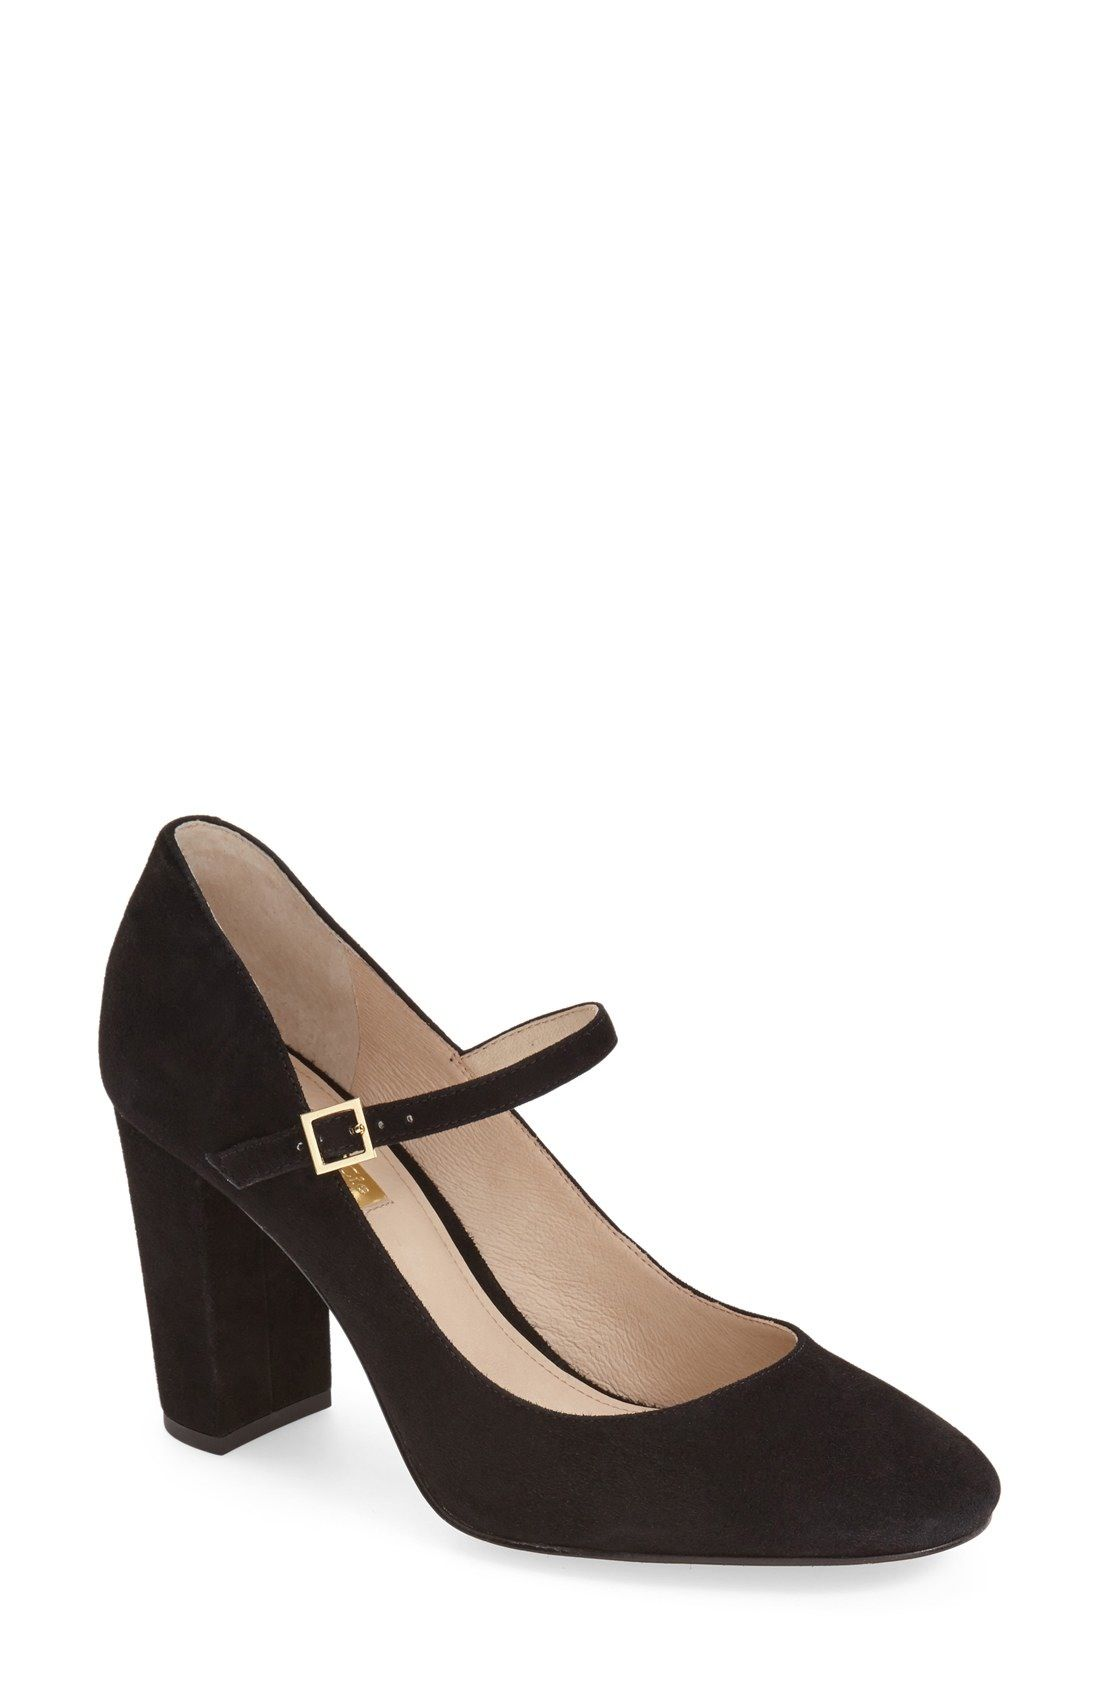 f5c5c4a9c9b Louise et Cie  Jayde  Mary Jane Block Heel Pump (Women) (Nordstrom  Exclusive) available at  Nordstrom